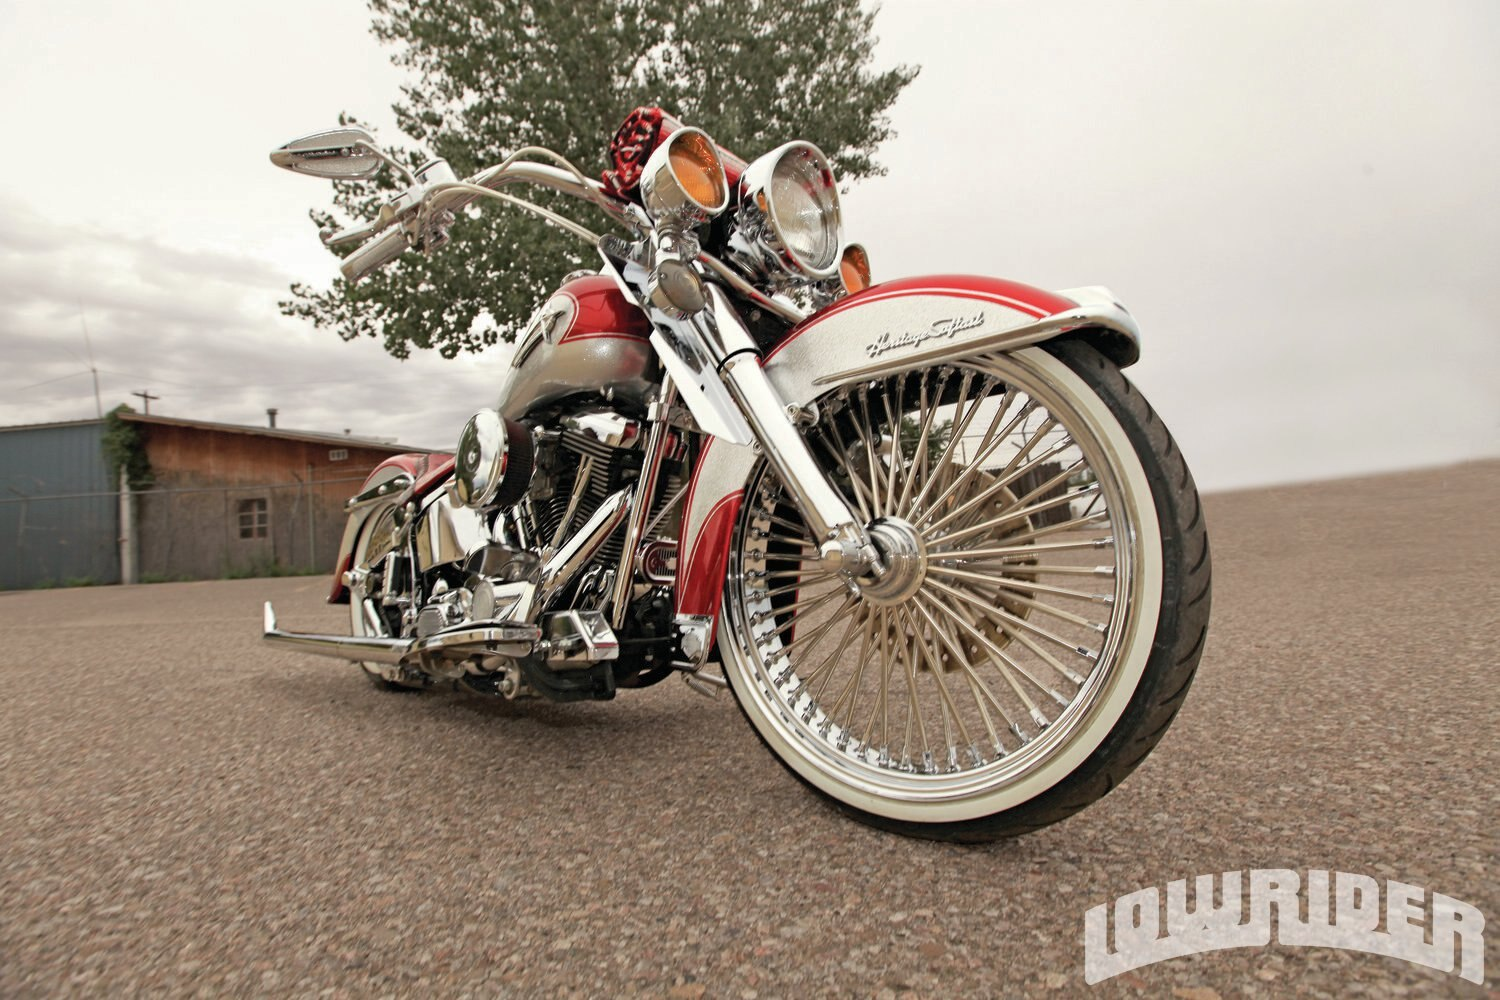 1998-harley-davidson-softail-front-right-side-view1